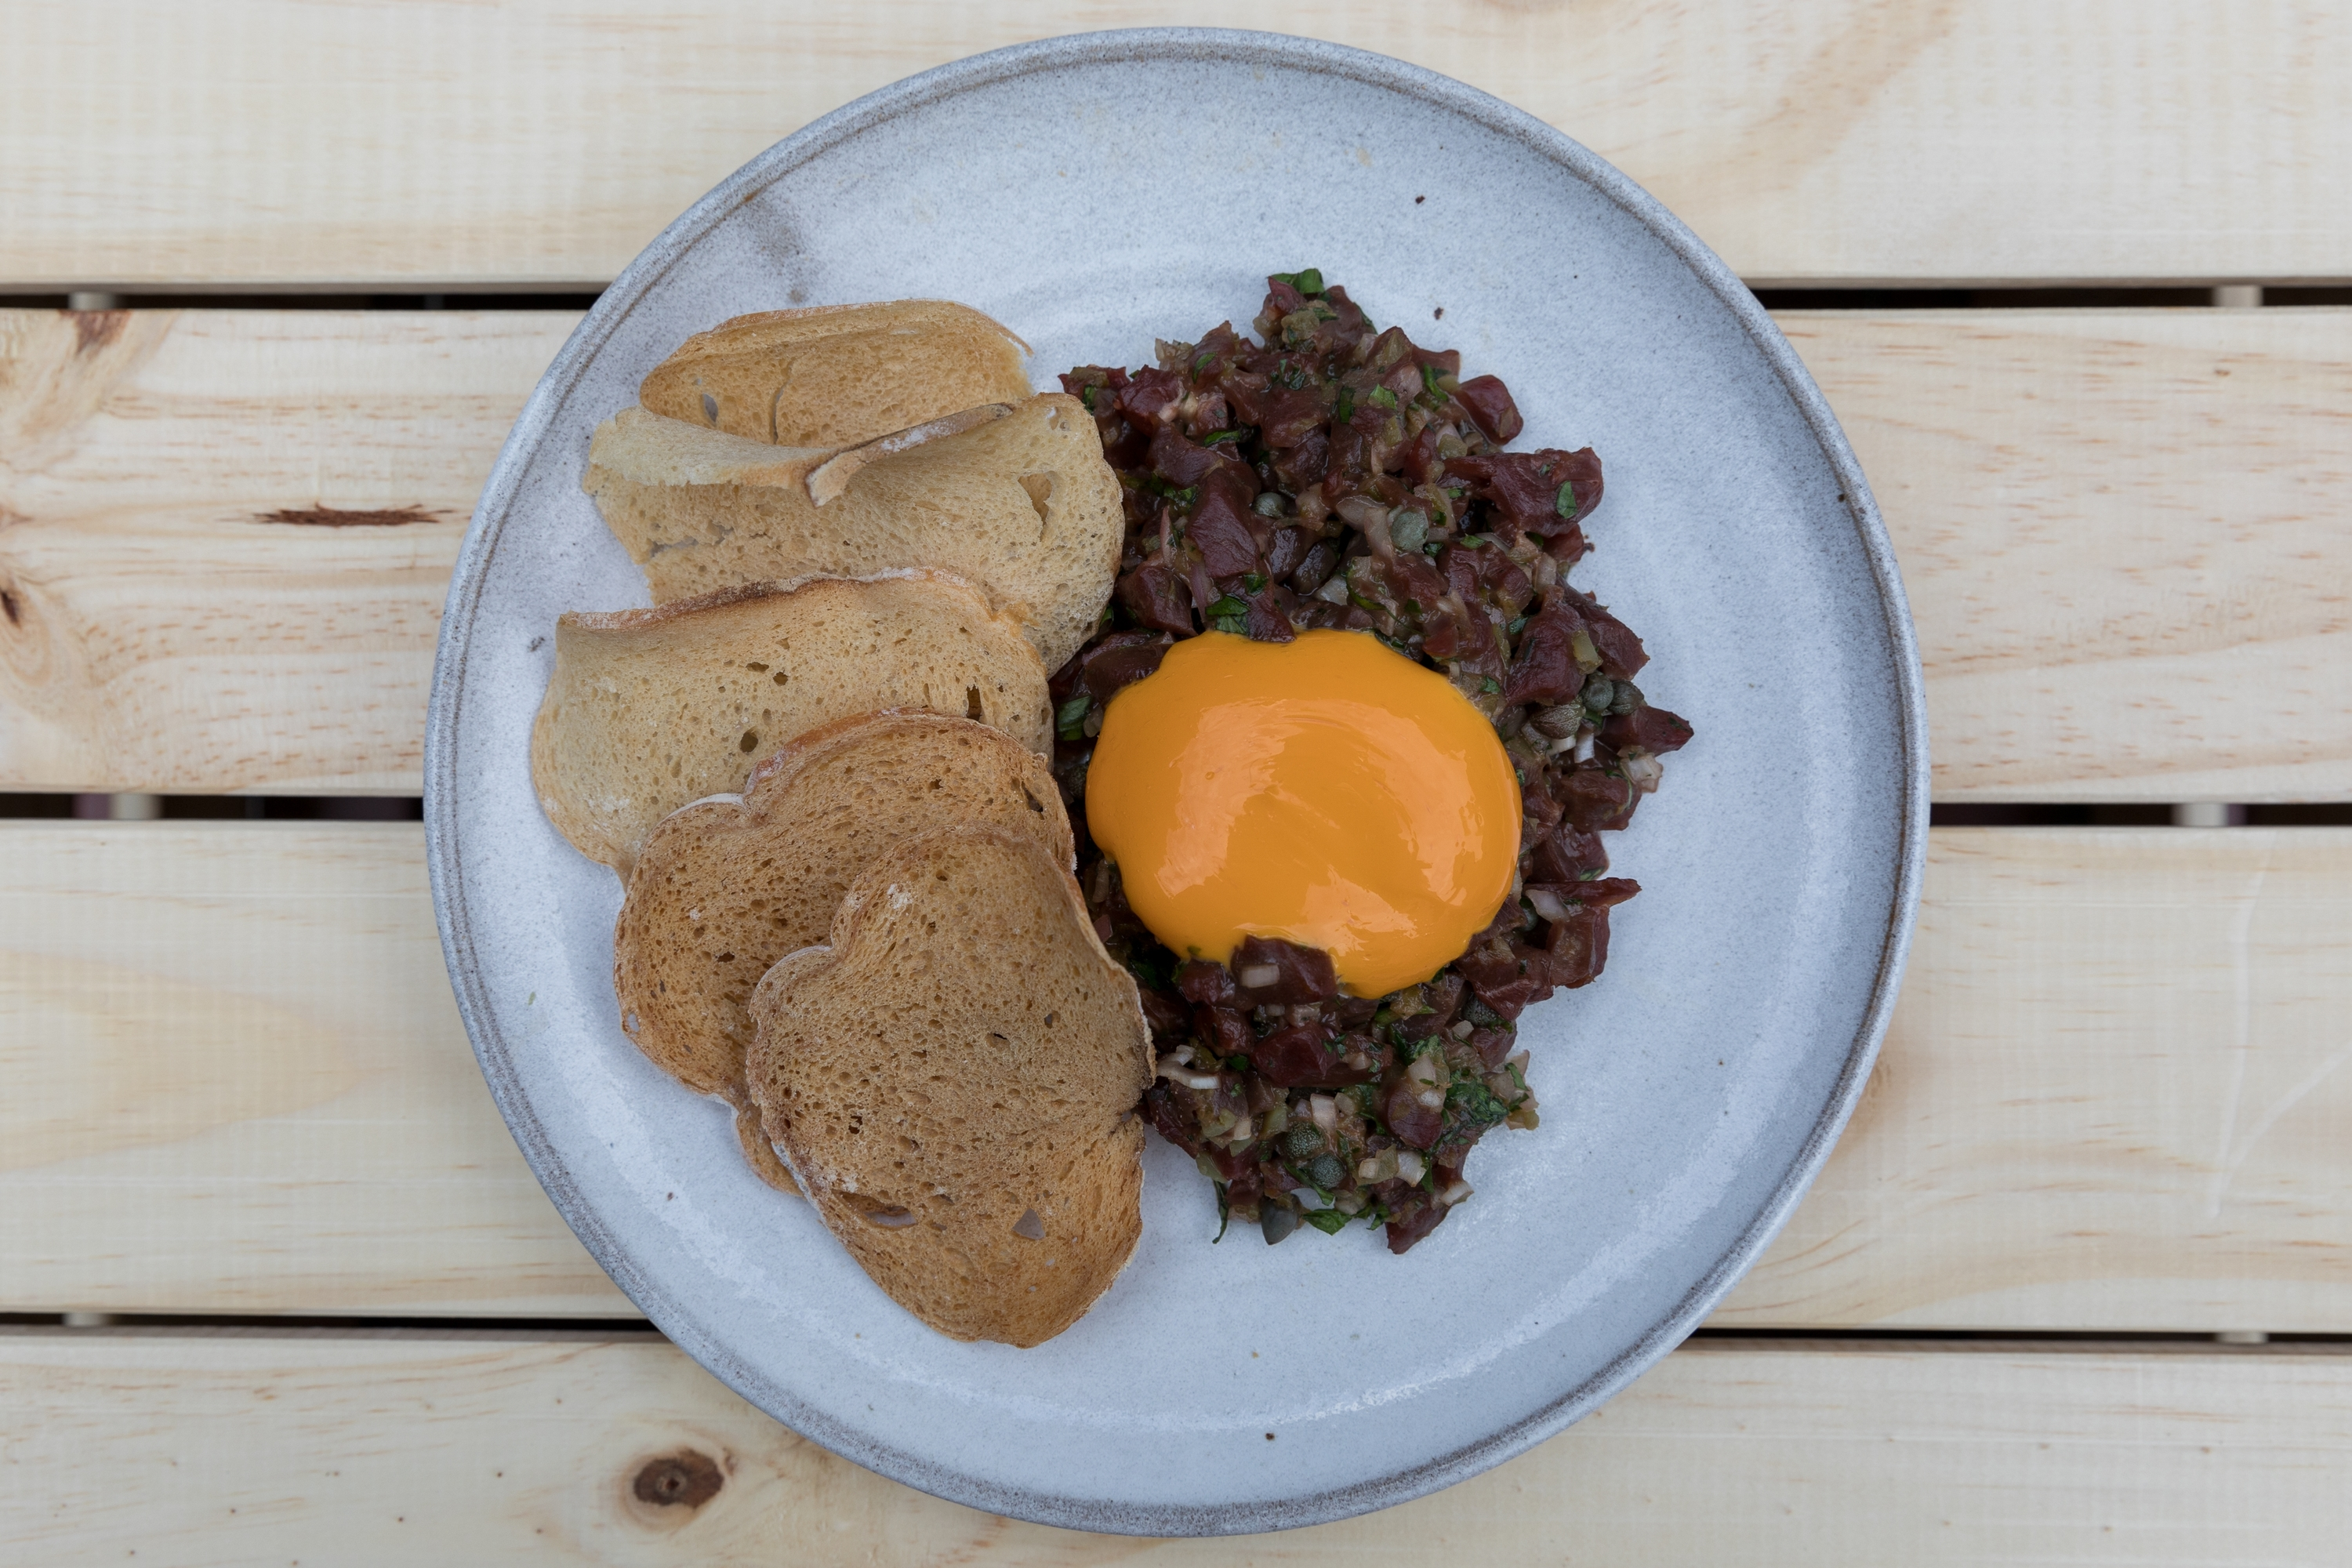 Rhoda: Wild Hereford ox heart tartare with egg yolk puree